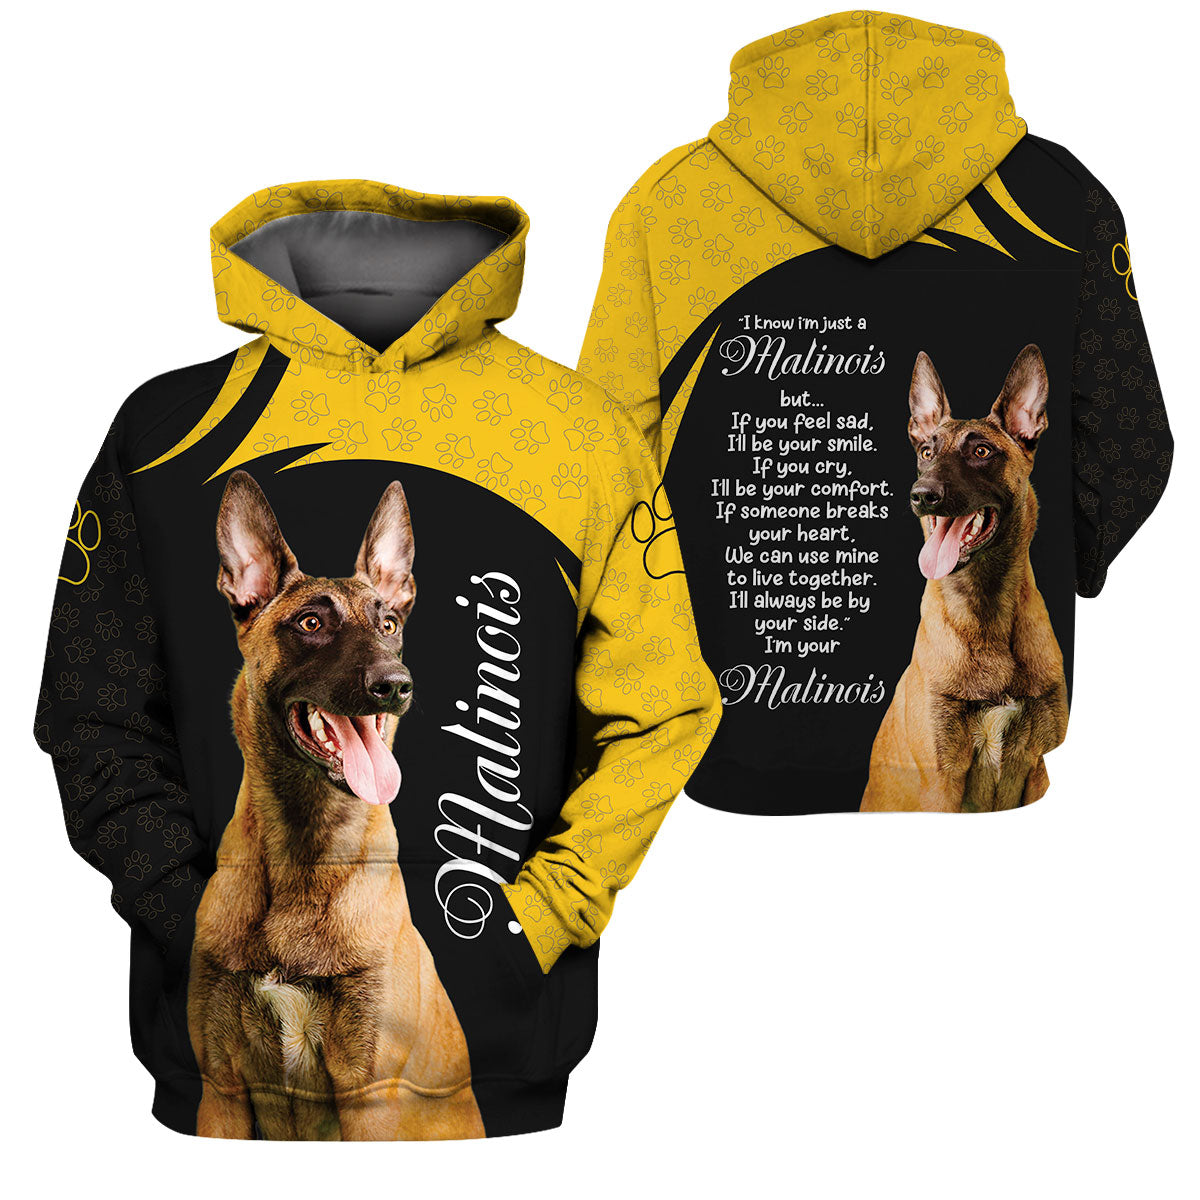 3D Apparel - I'll Always Be By Your Side - Malinois